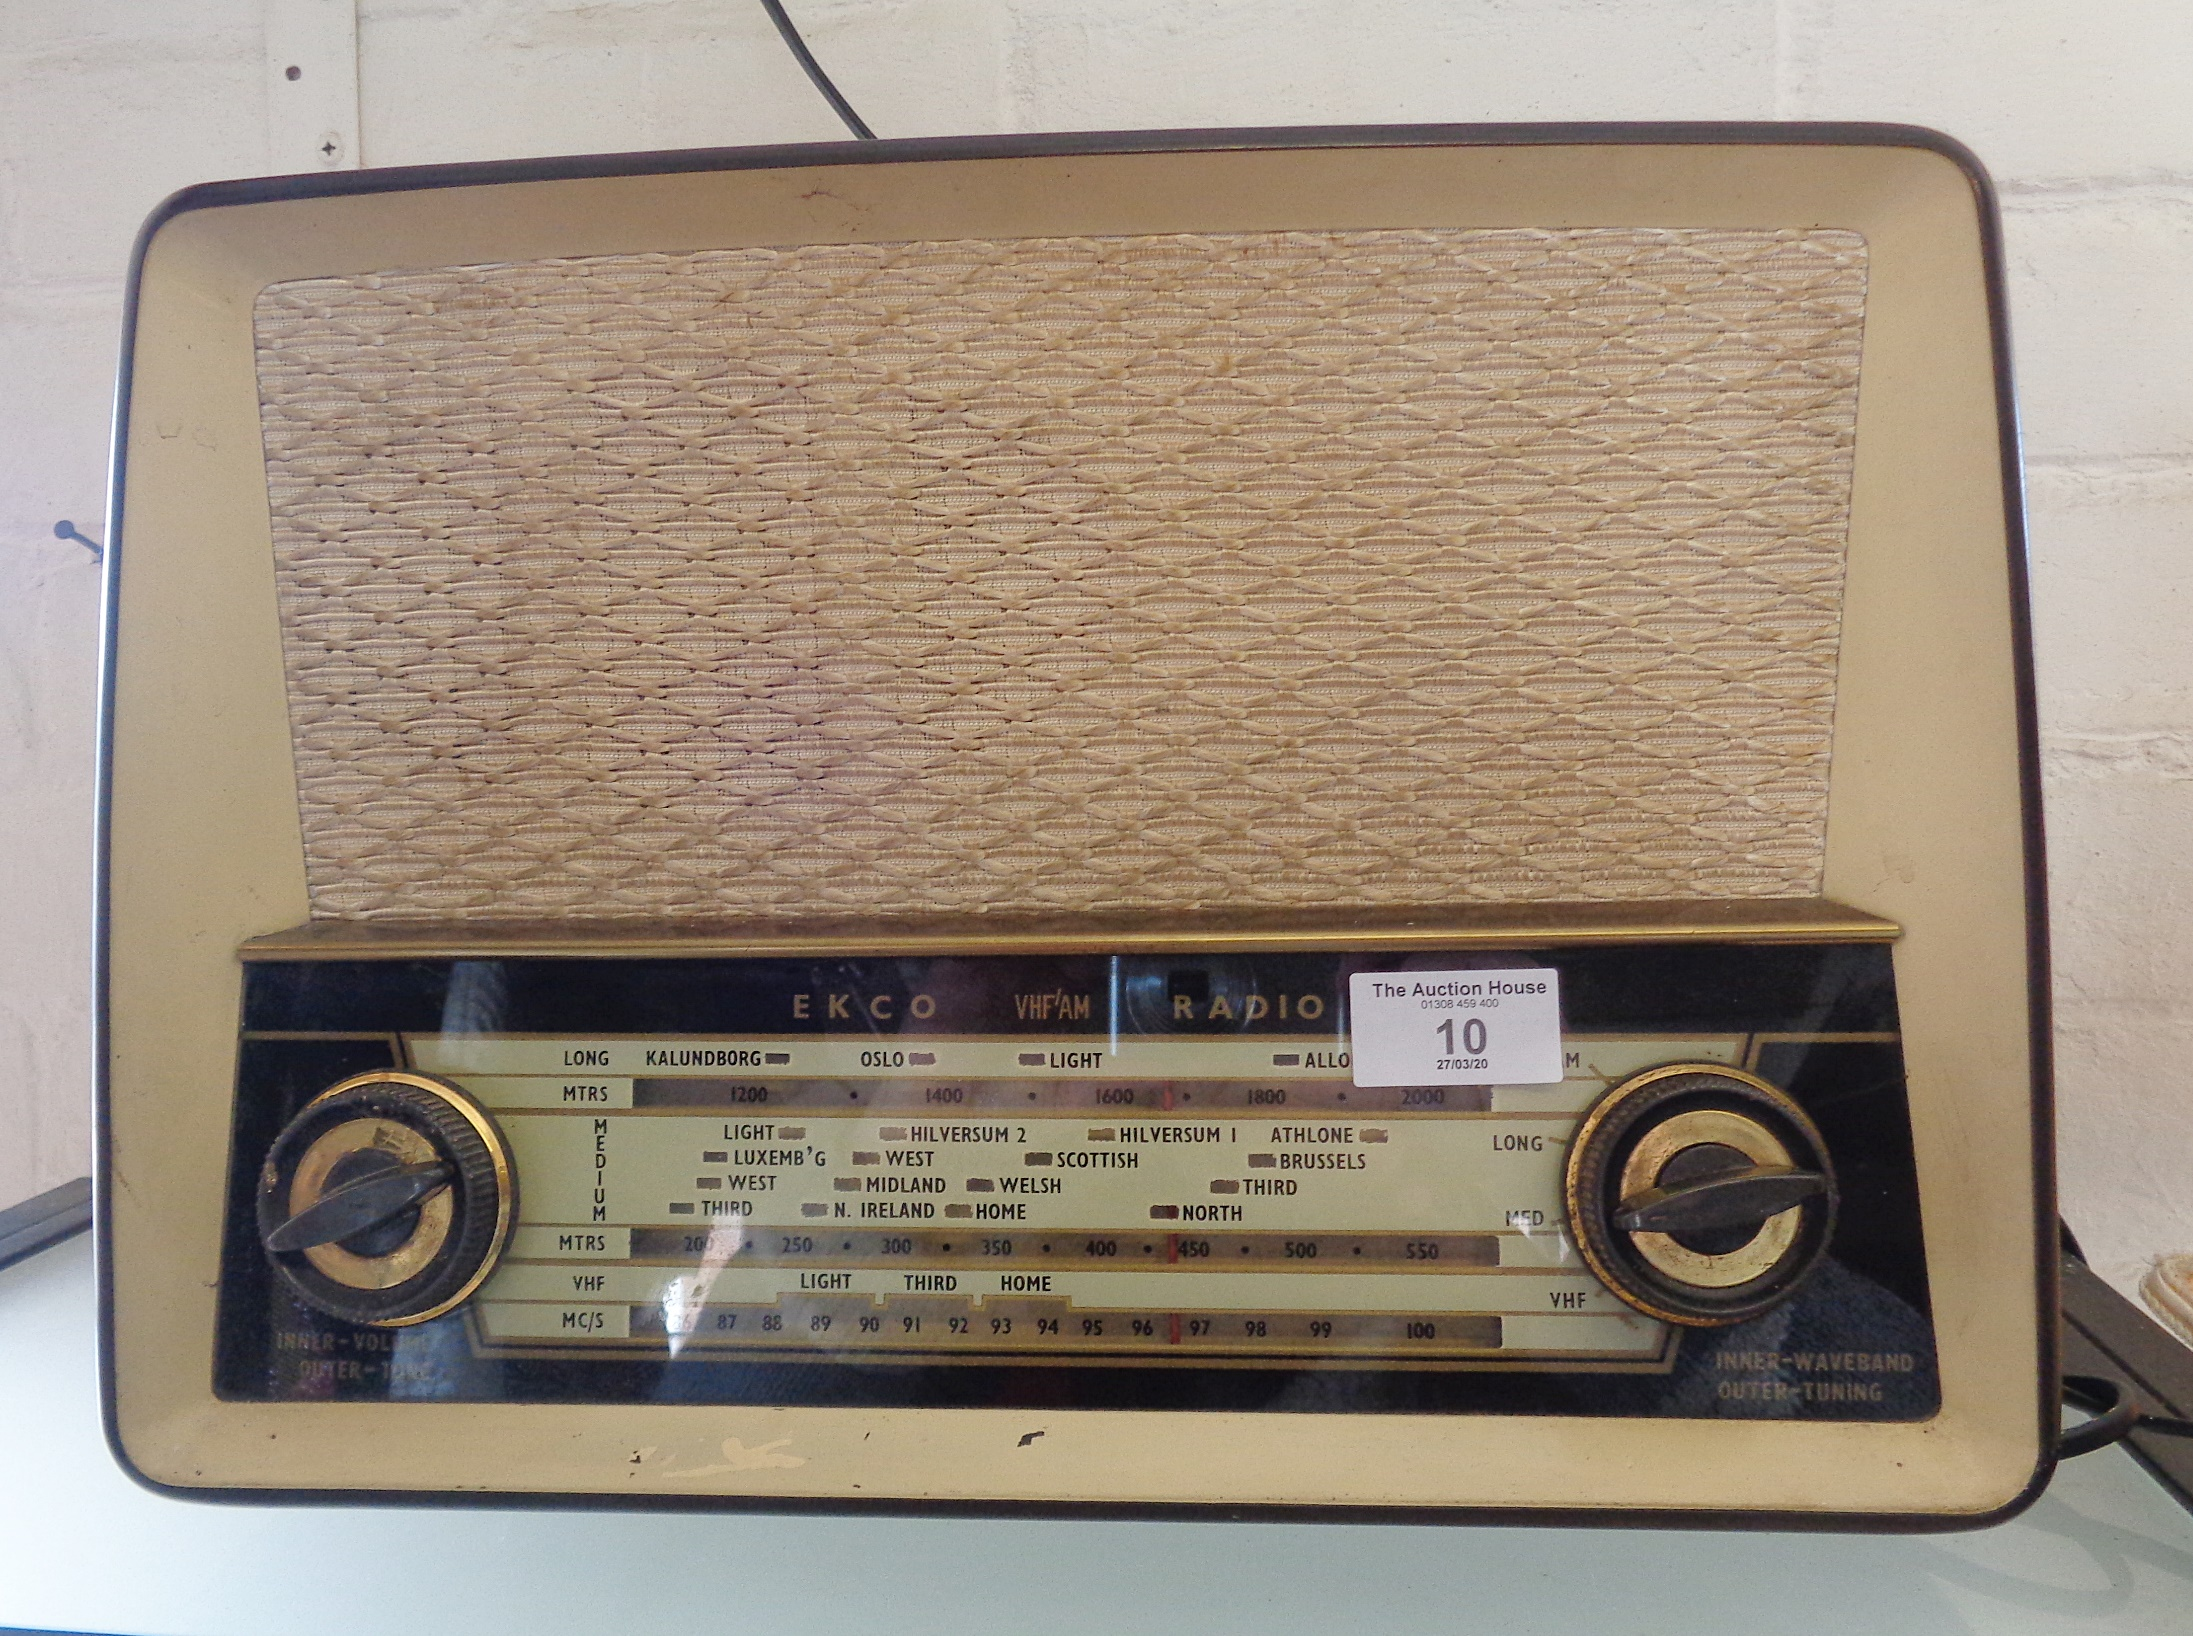 Lot 10 - An Ekco U319 5 valve table radio, c. 1957, in brown bakelite case with brass trim, fully restored